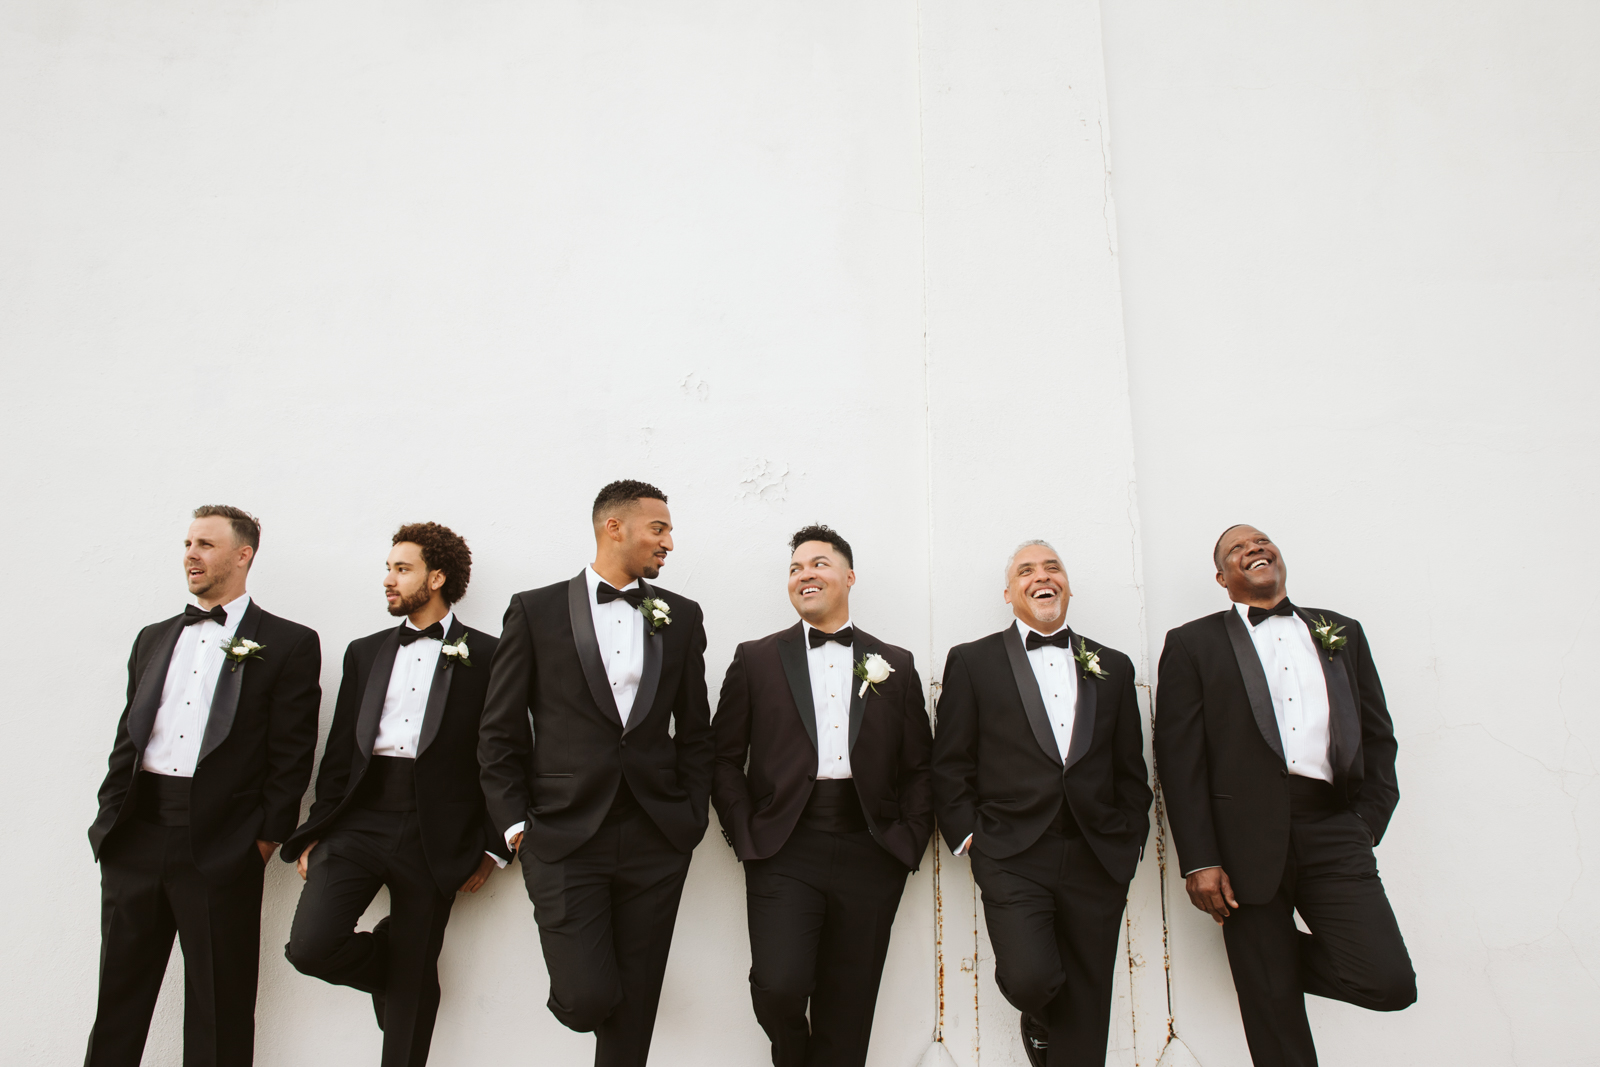 Groom party by destination wedding photographer Natalia Wisniewska